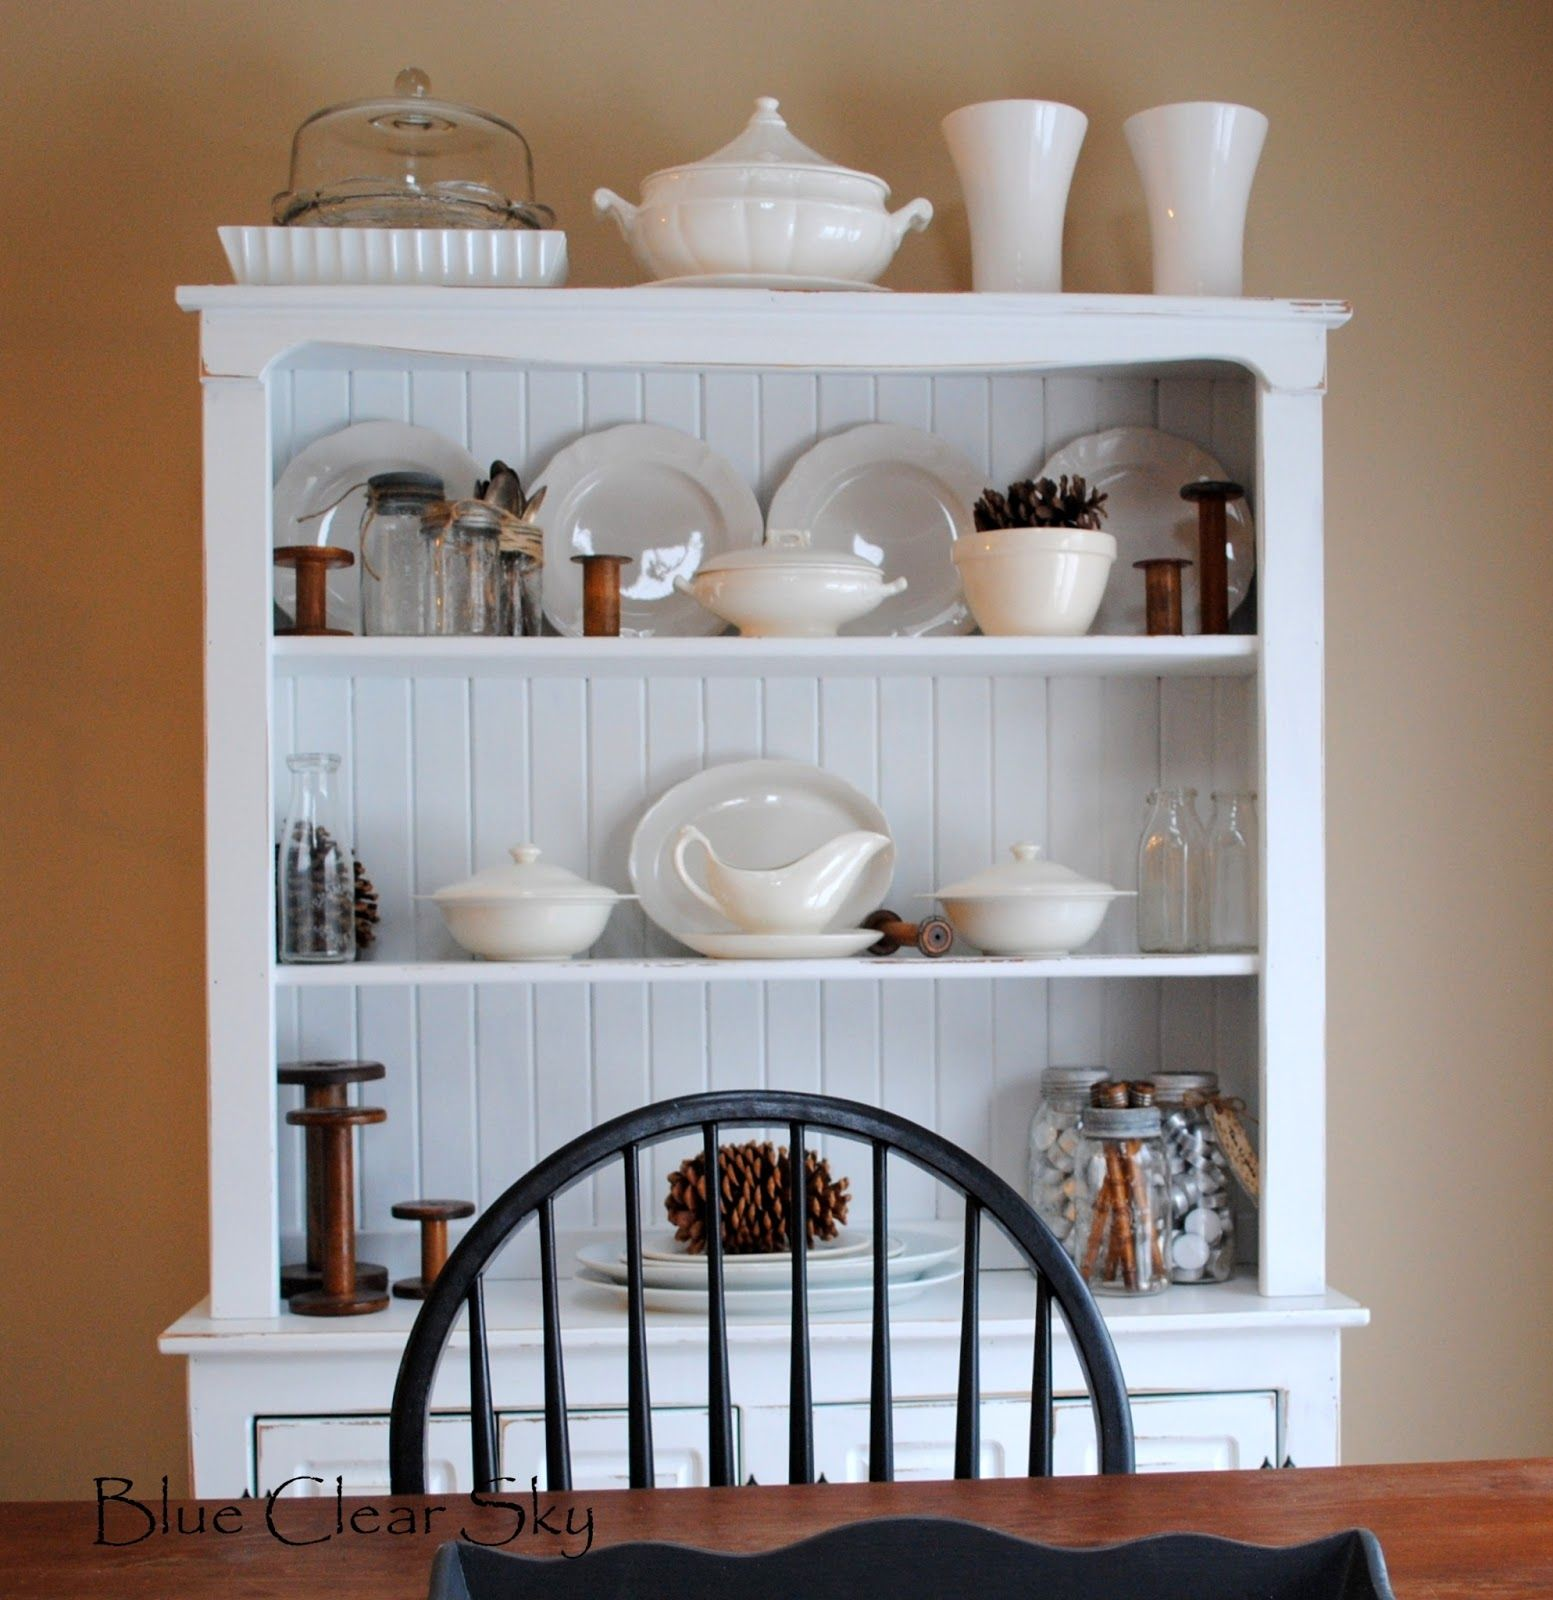 Washed Decor Corner Display Woodworking Dimensions Cabinet Plans Hutch Decorating Expanding Dining Table Ana Farmhouse Black Off Room Painted Hutches Ideas